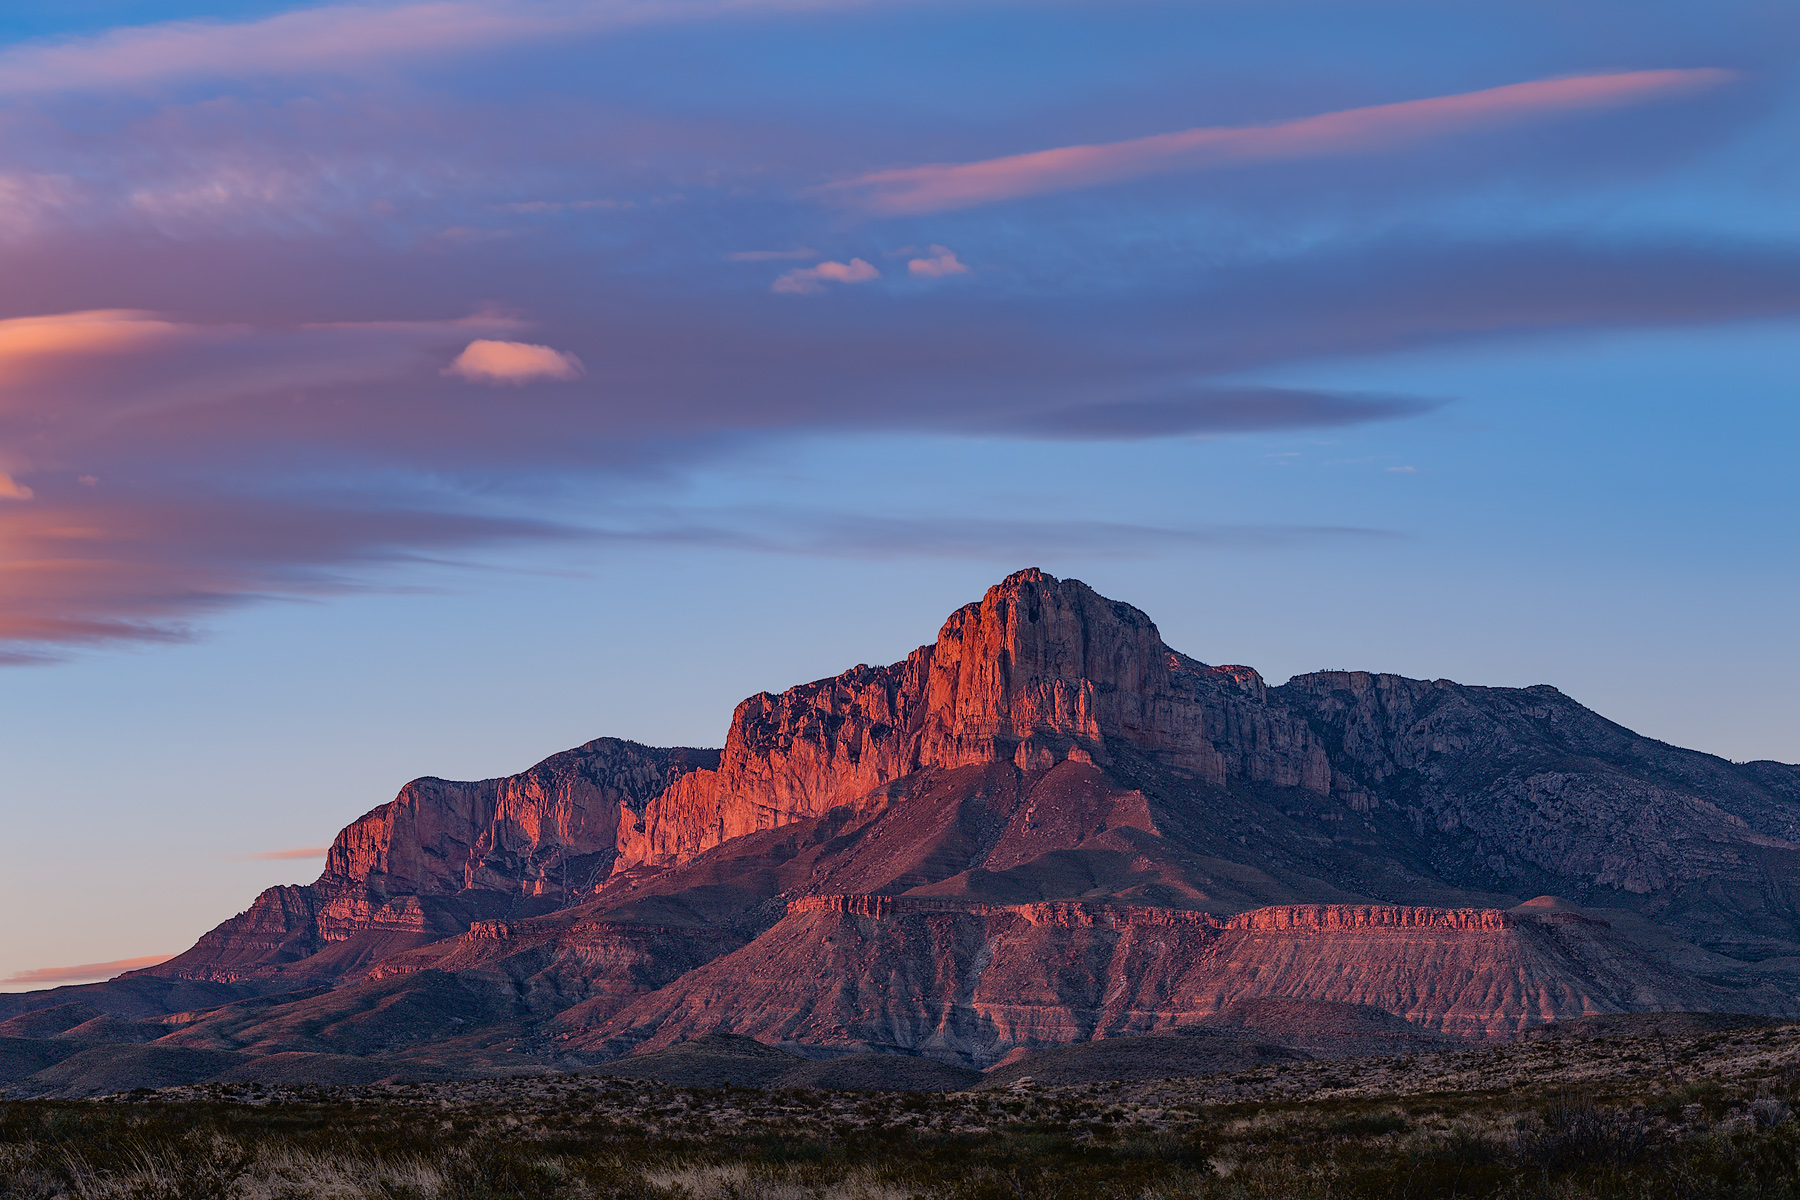 Last light on the Guadalupe Mountains at Guadalupe Mountains National Park in Culberson County, Texas.